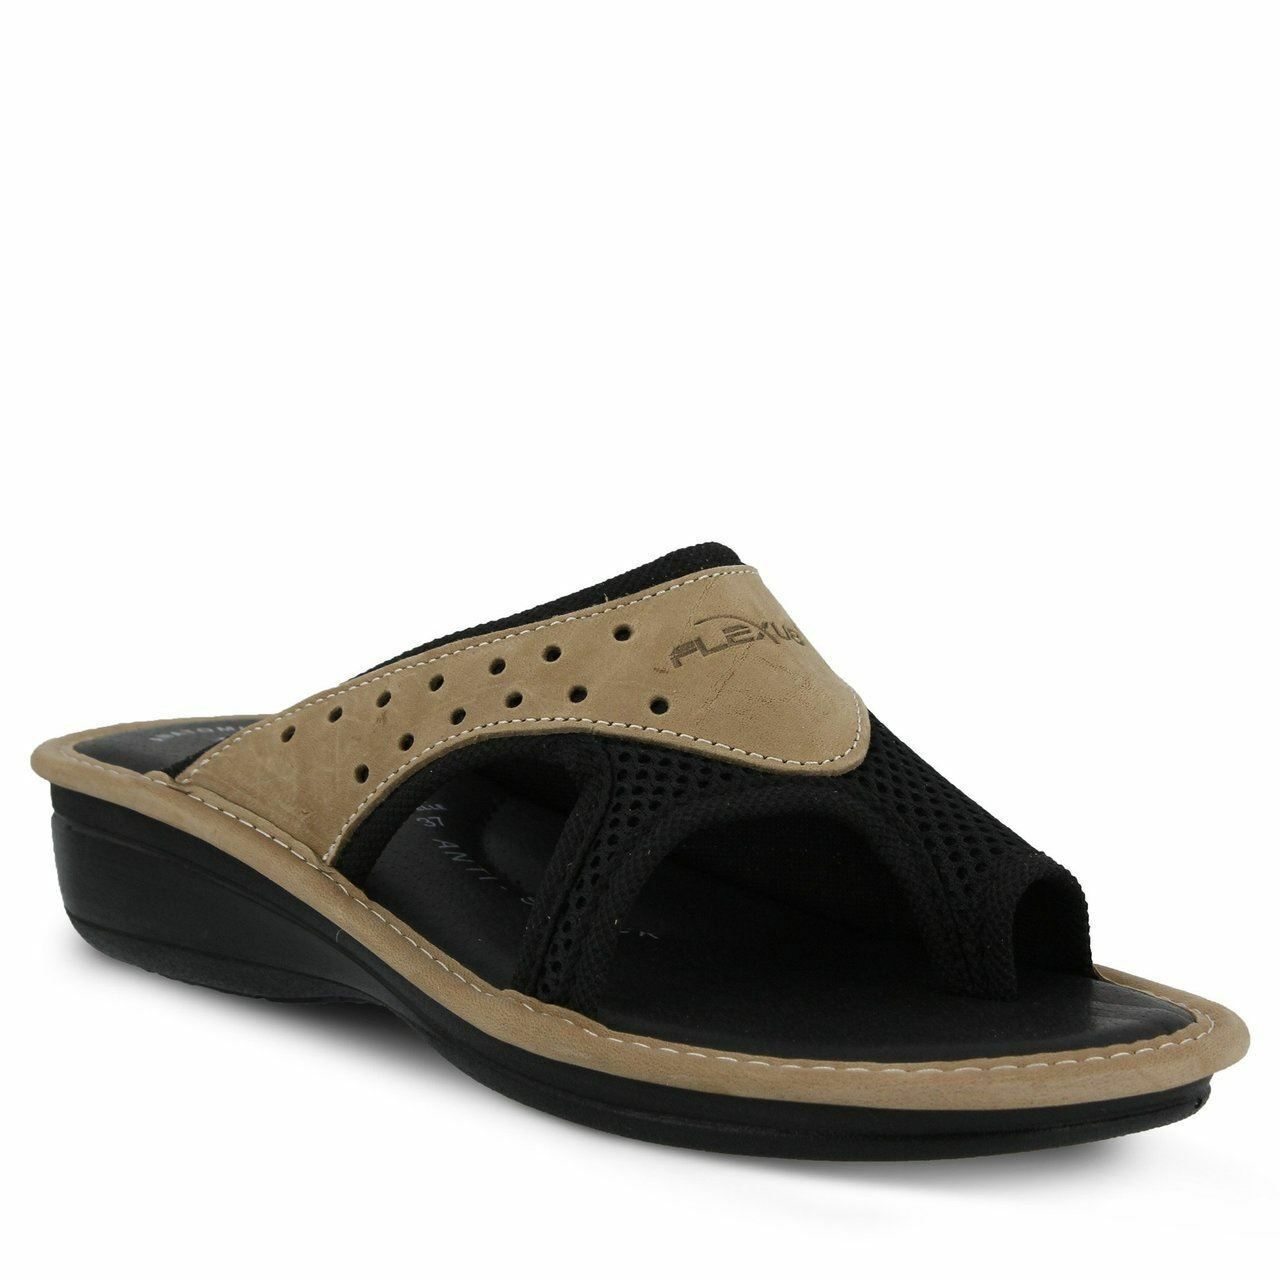 Spring Step Flexus Women's Pascalle Slide Sandal Black